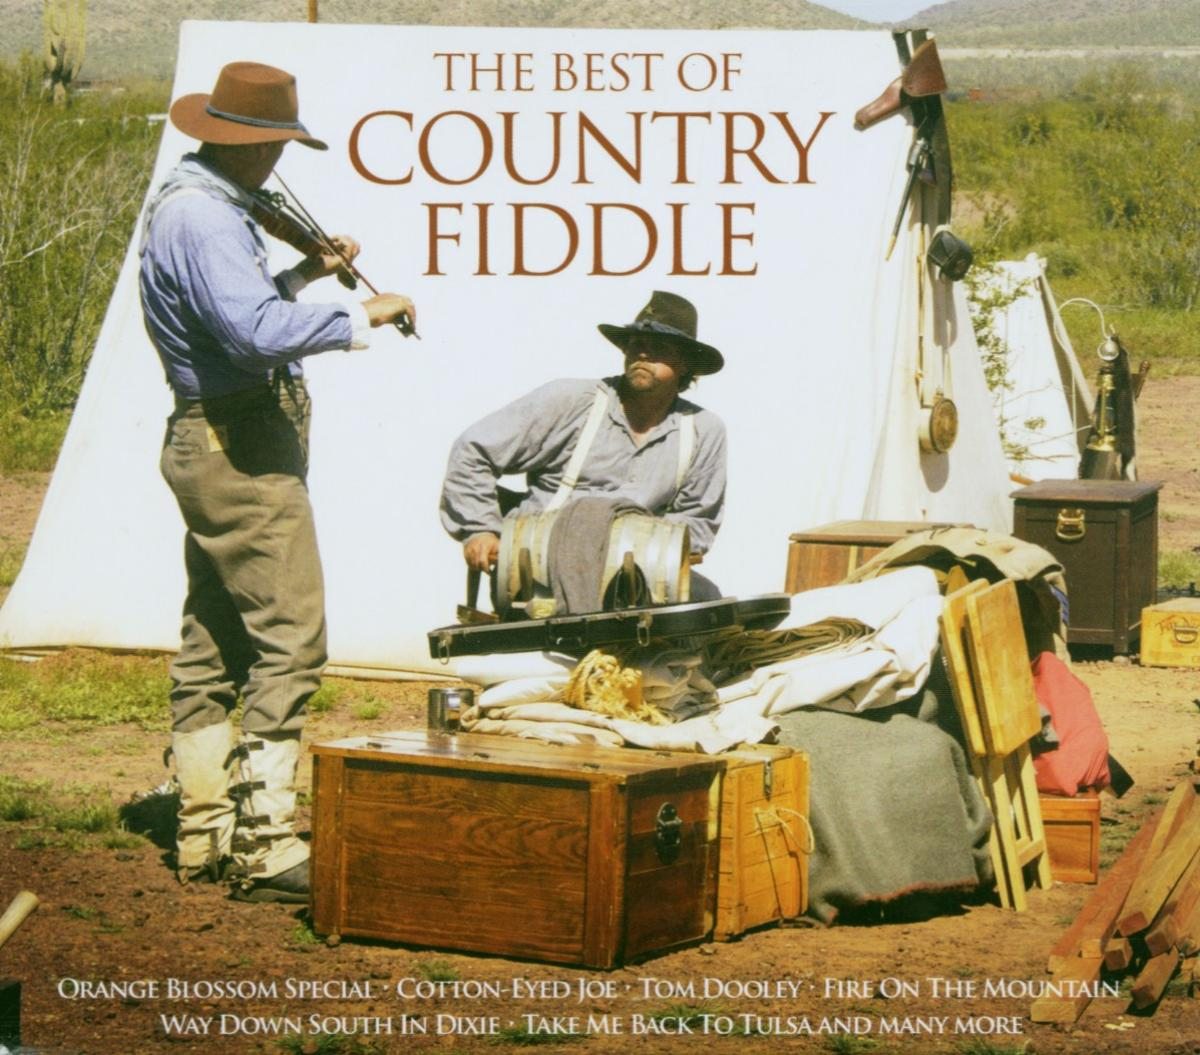 Mbop-Global-Best-of-Country-Fiddle